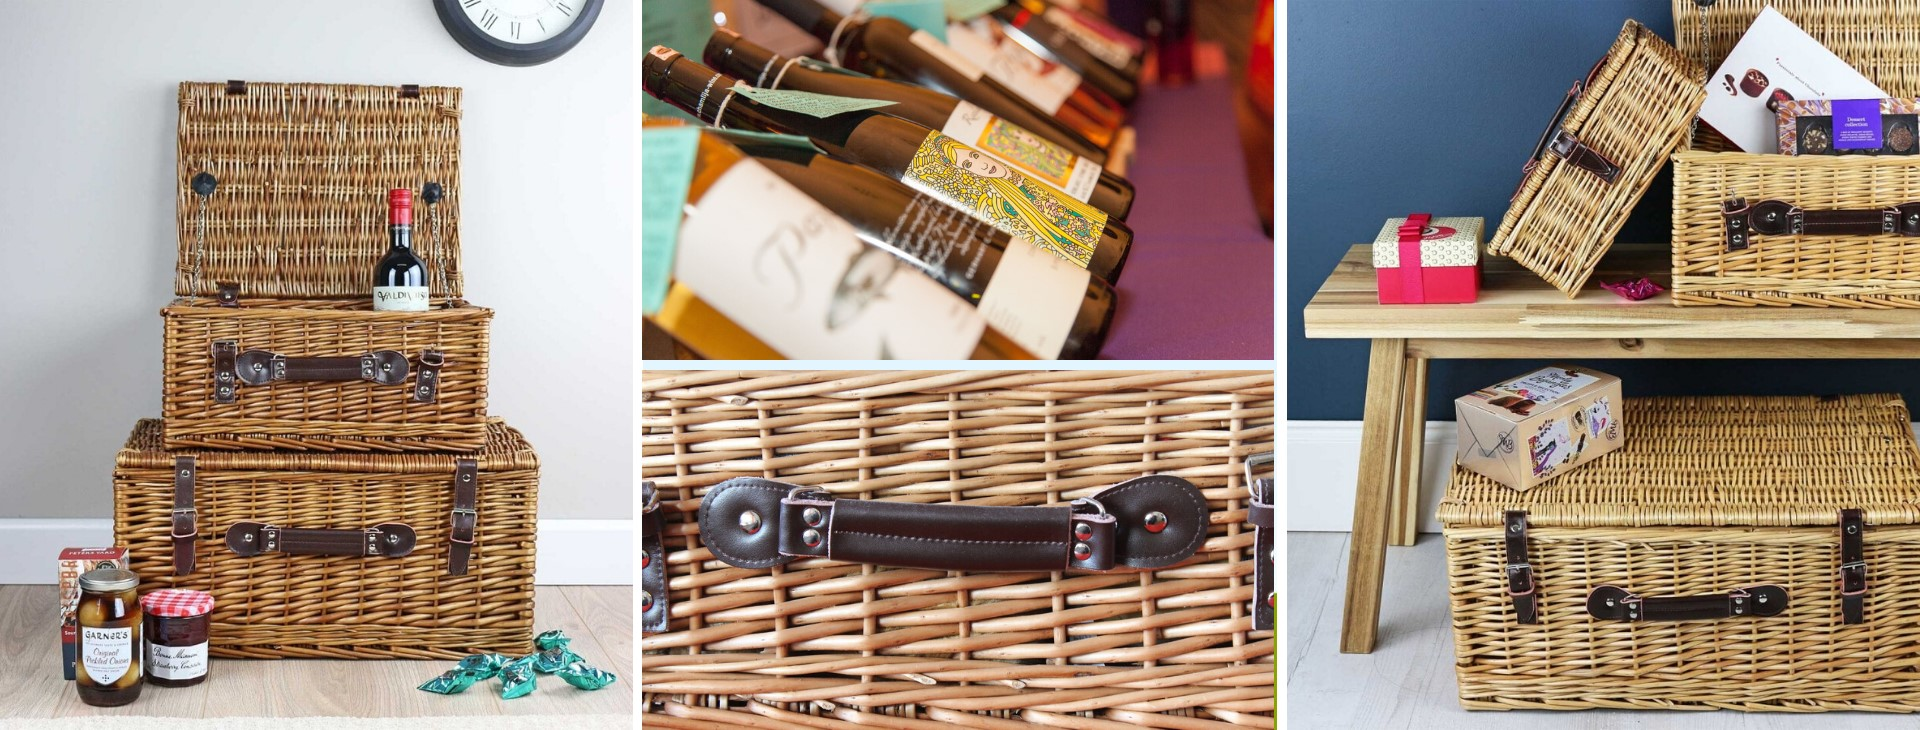 Cotswolds Hampers. Hampers and treat boxes filled with exceptional things to eat and delightful things to drink made by local artisans and independent producers.